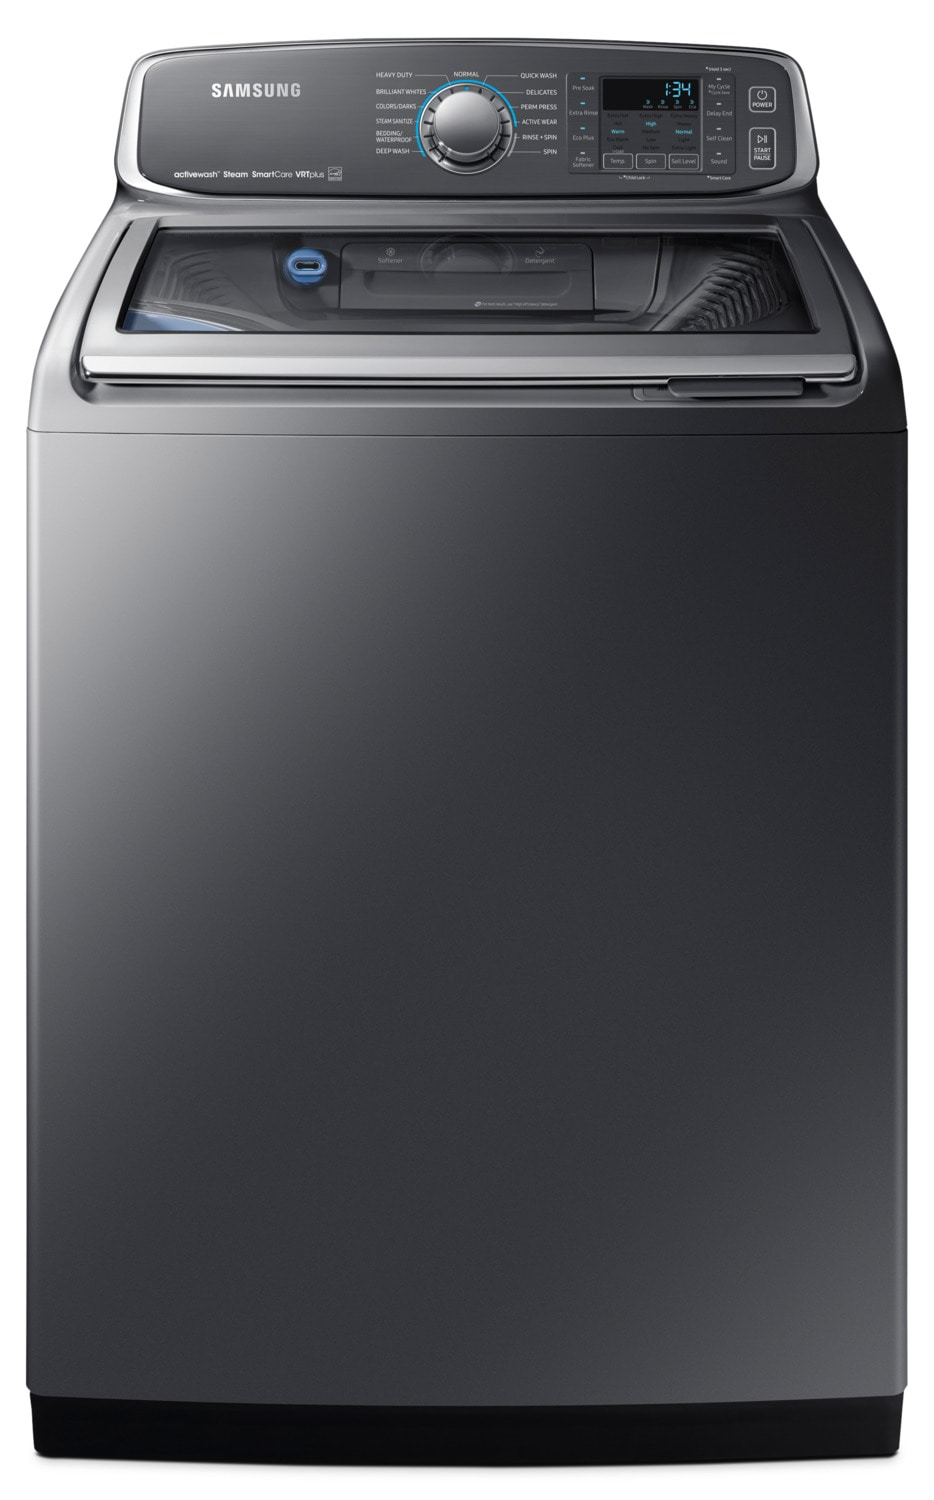 Samsung 6.0 Cu. Ft. Top-Load Washer – WA52M7755AP/A4